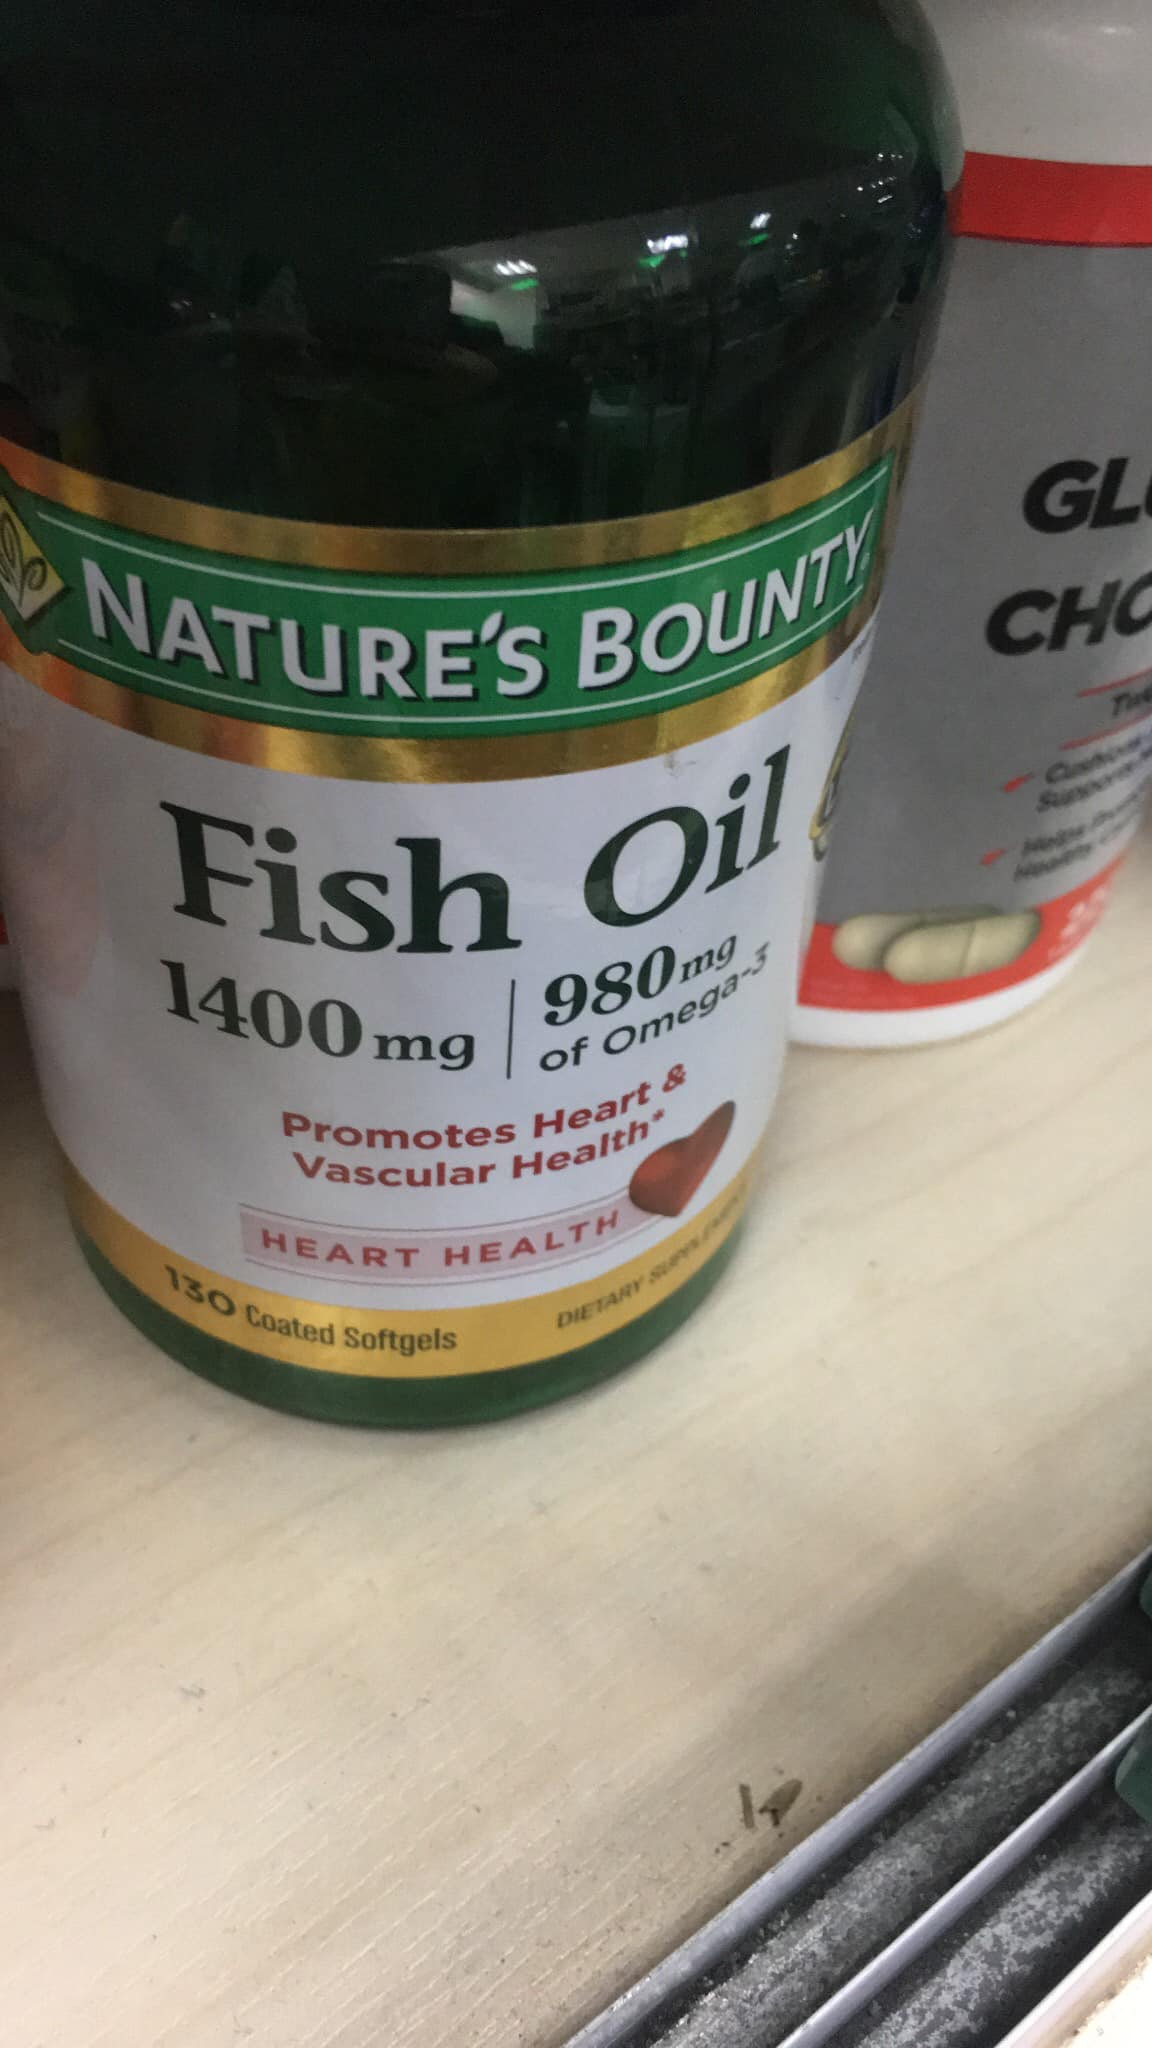 Fish Oil Nature's Bounty 1400mg 130 viên